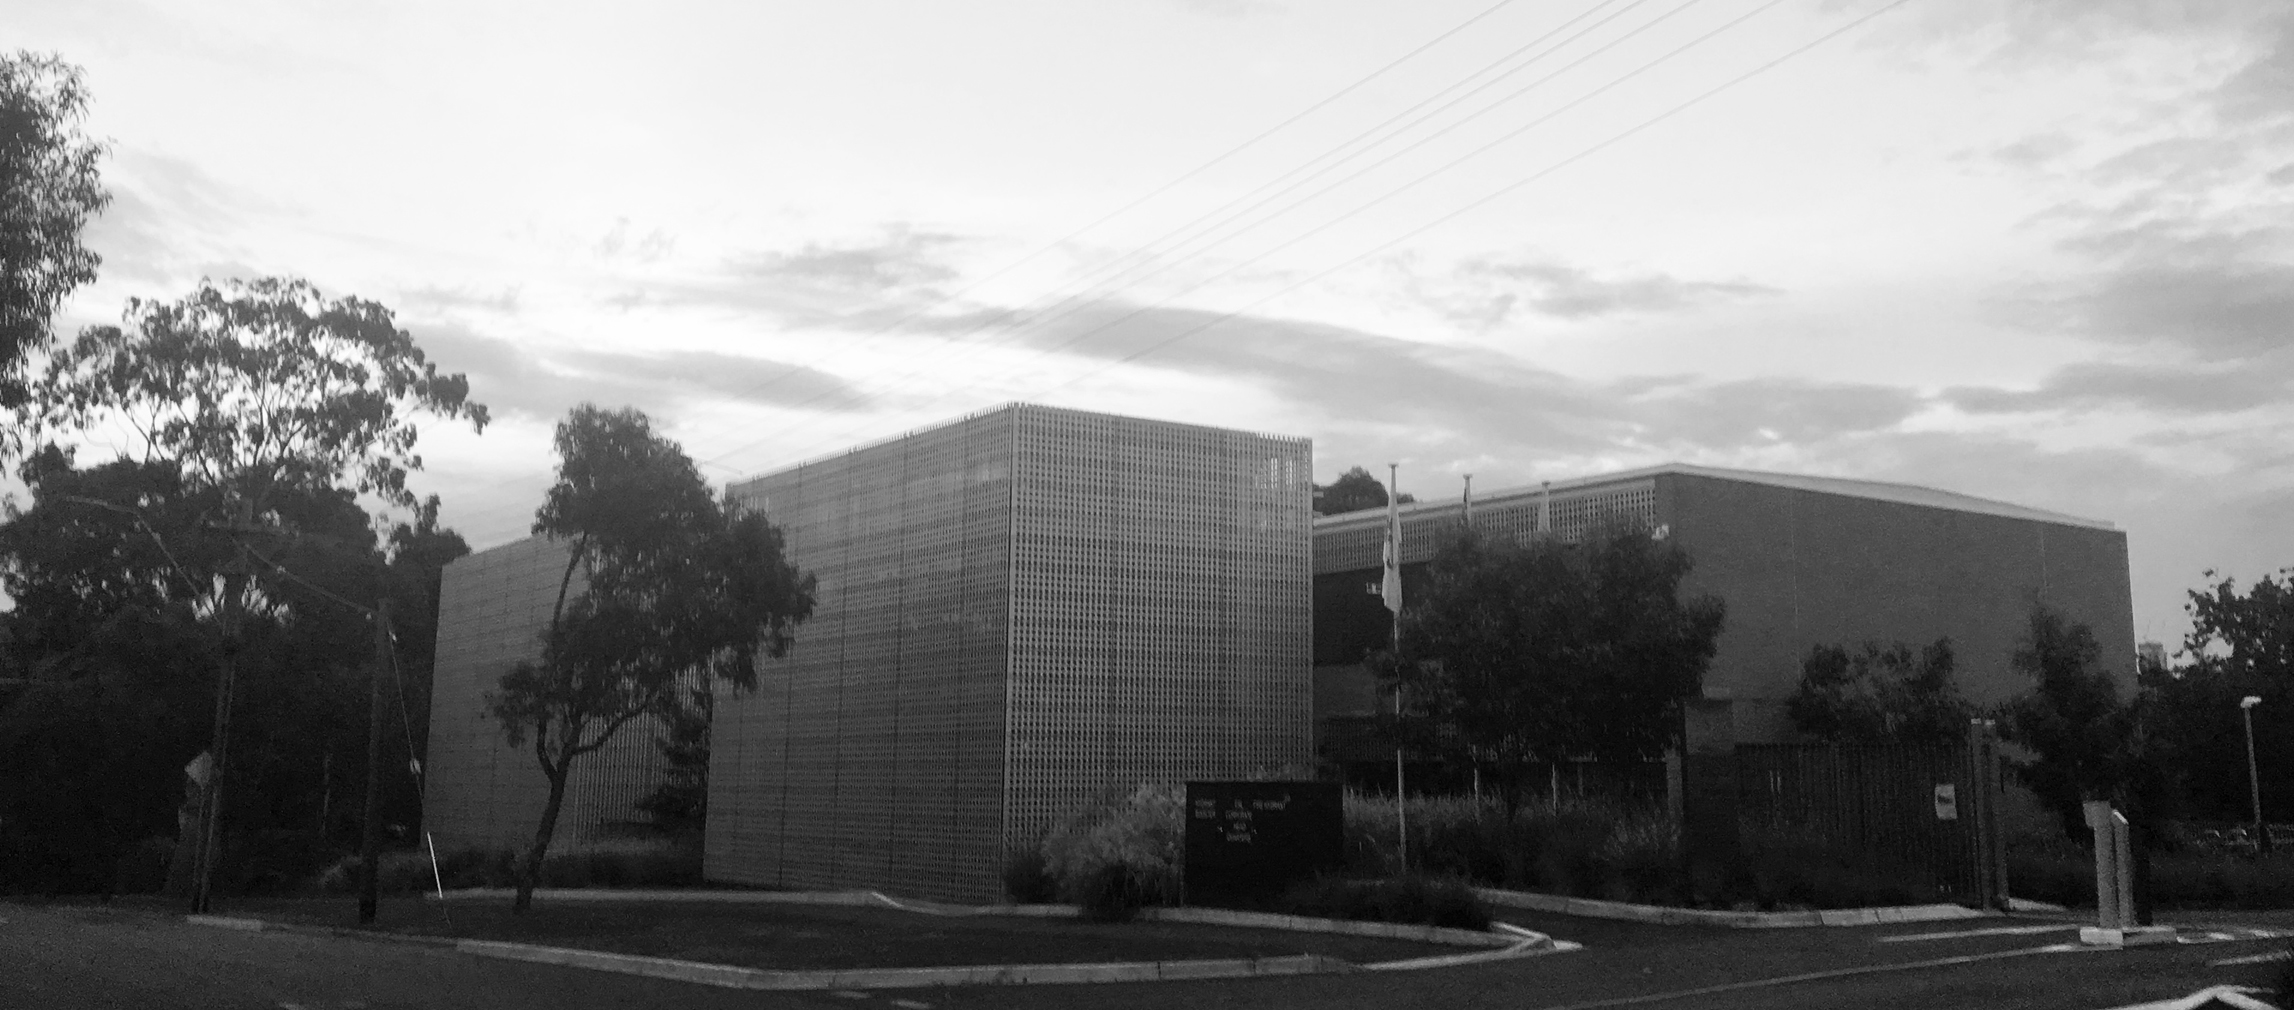 CSL Facility adjacent to the Parkville Youth Detention Centre